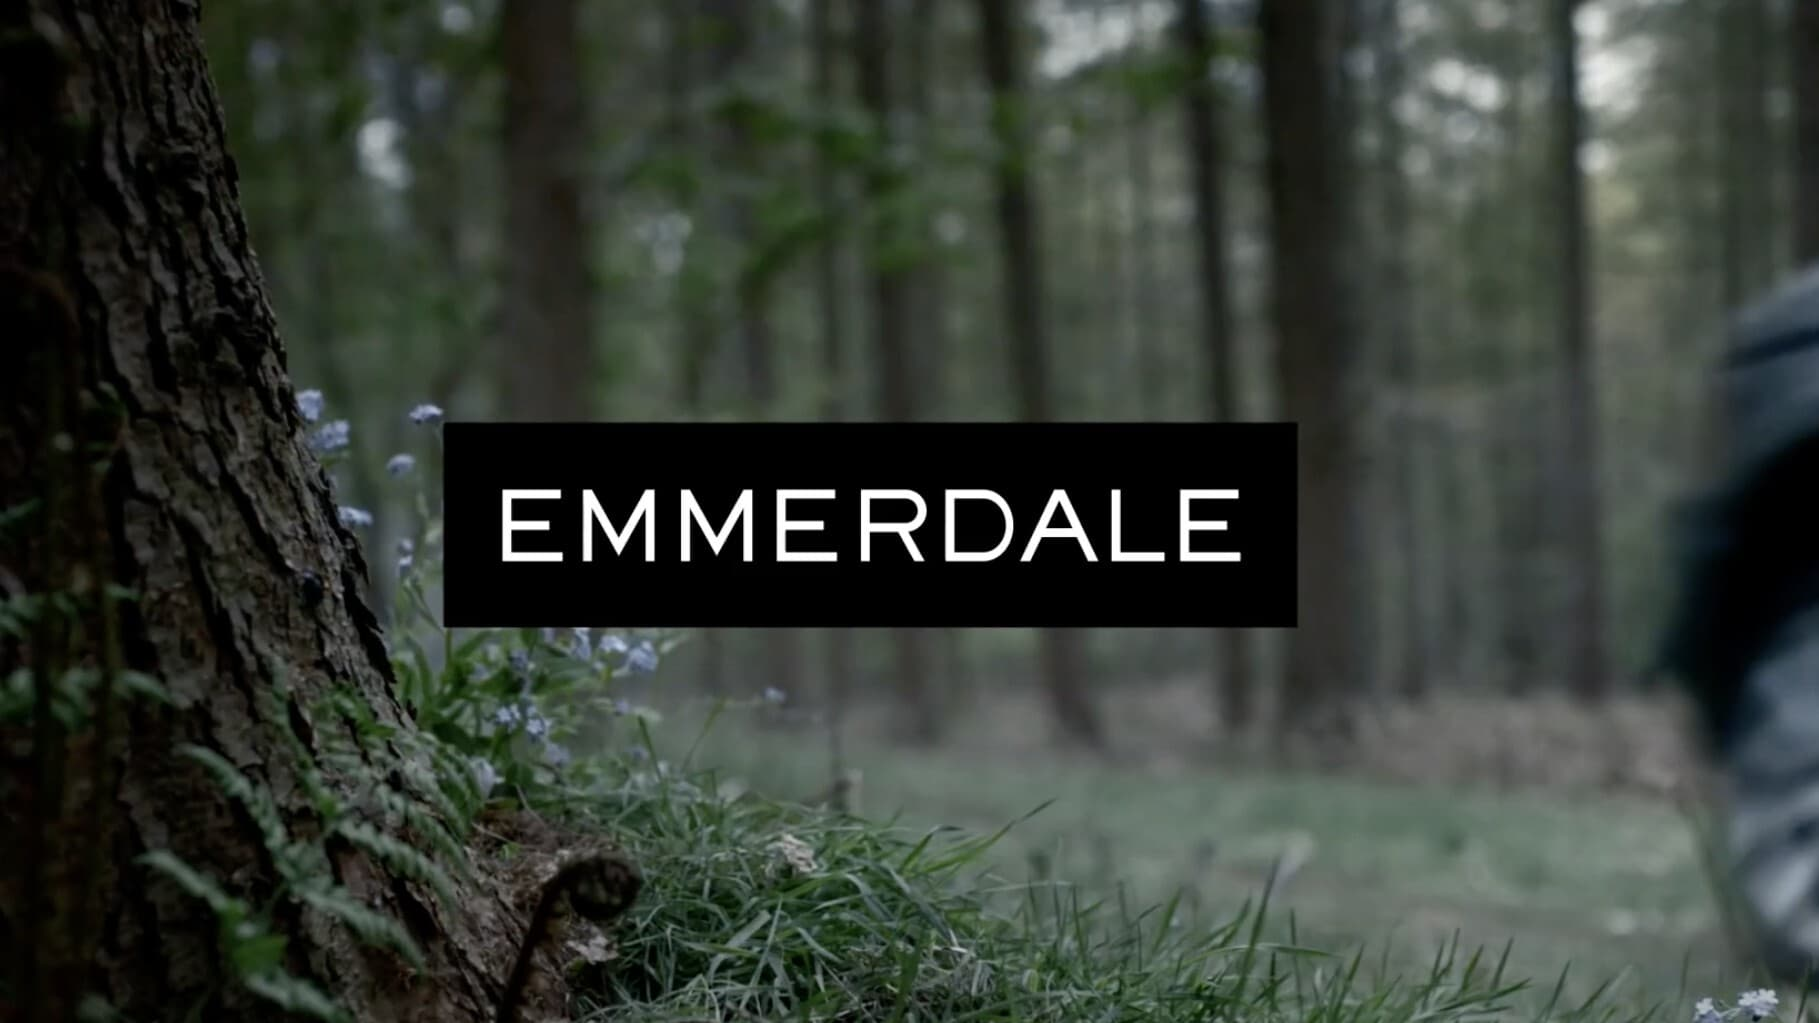 Emmerdale - Season 36 Episode 98 : April 25, 2007